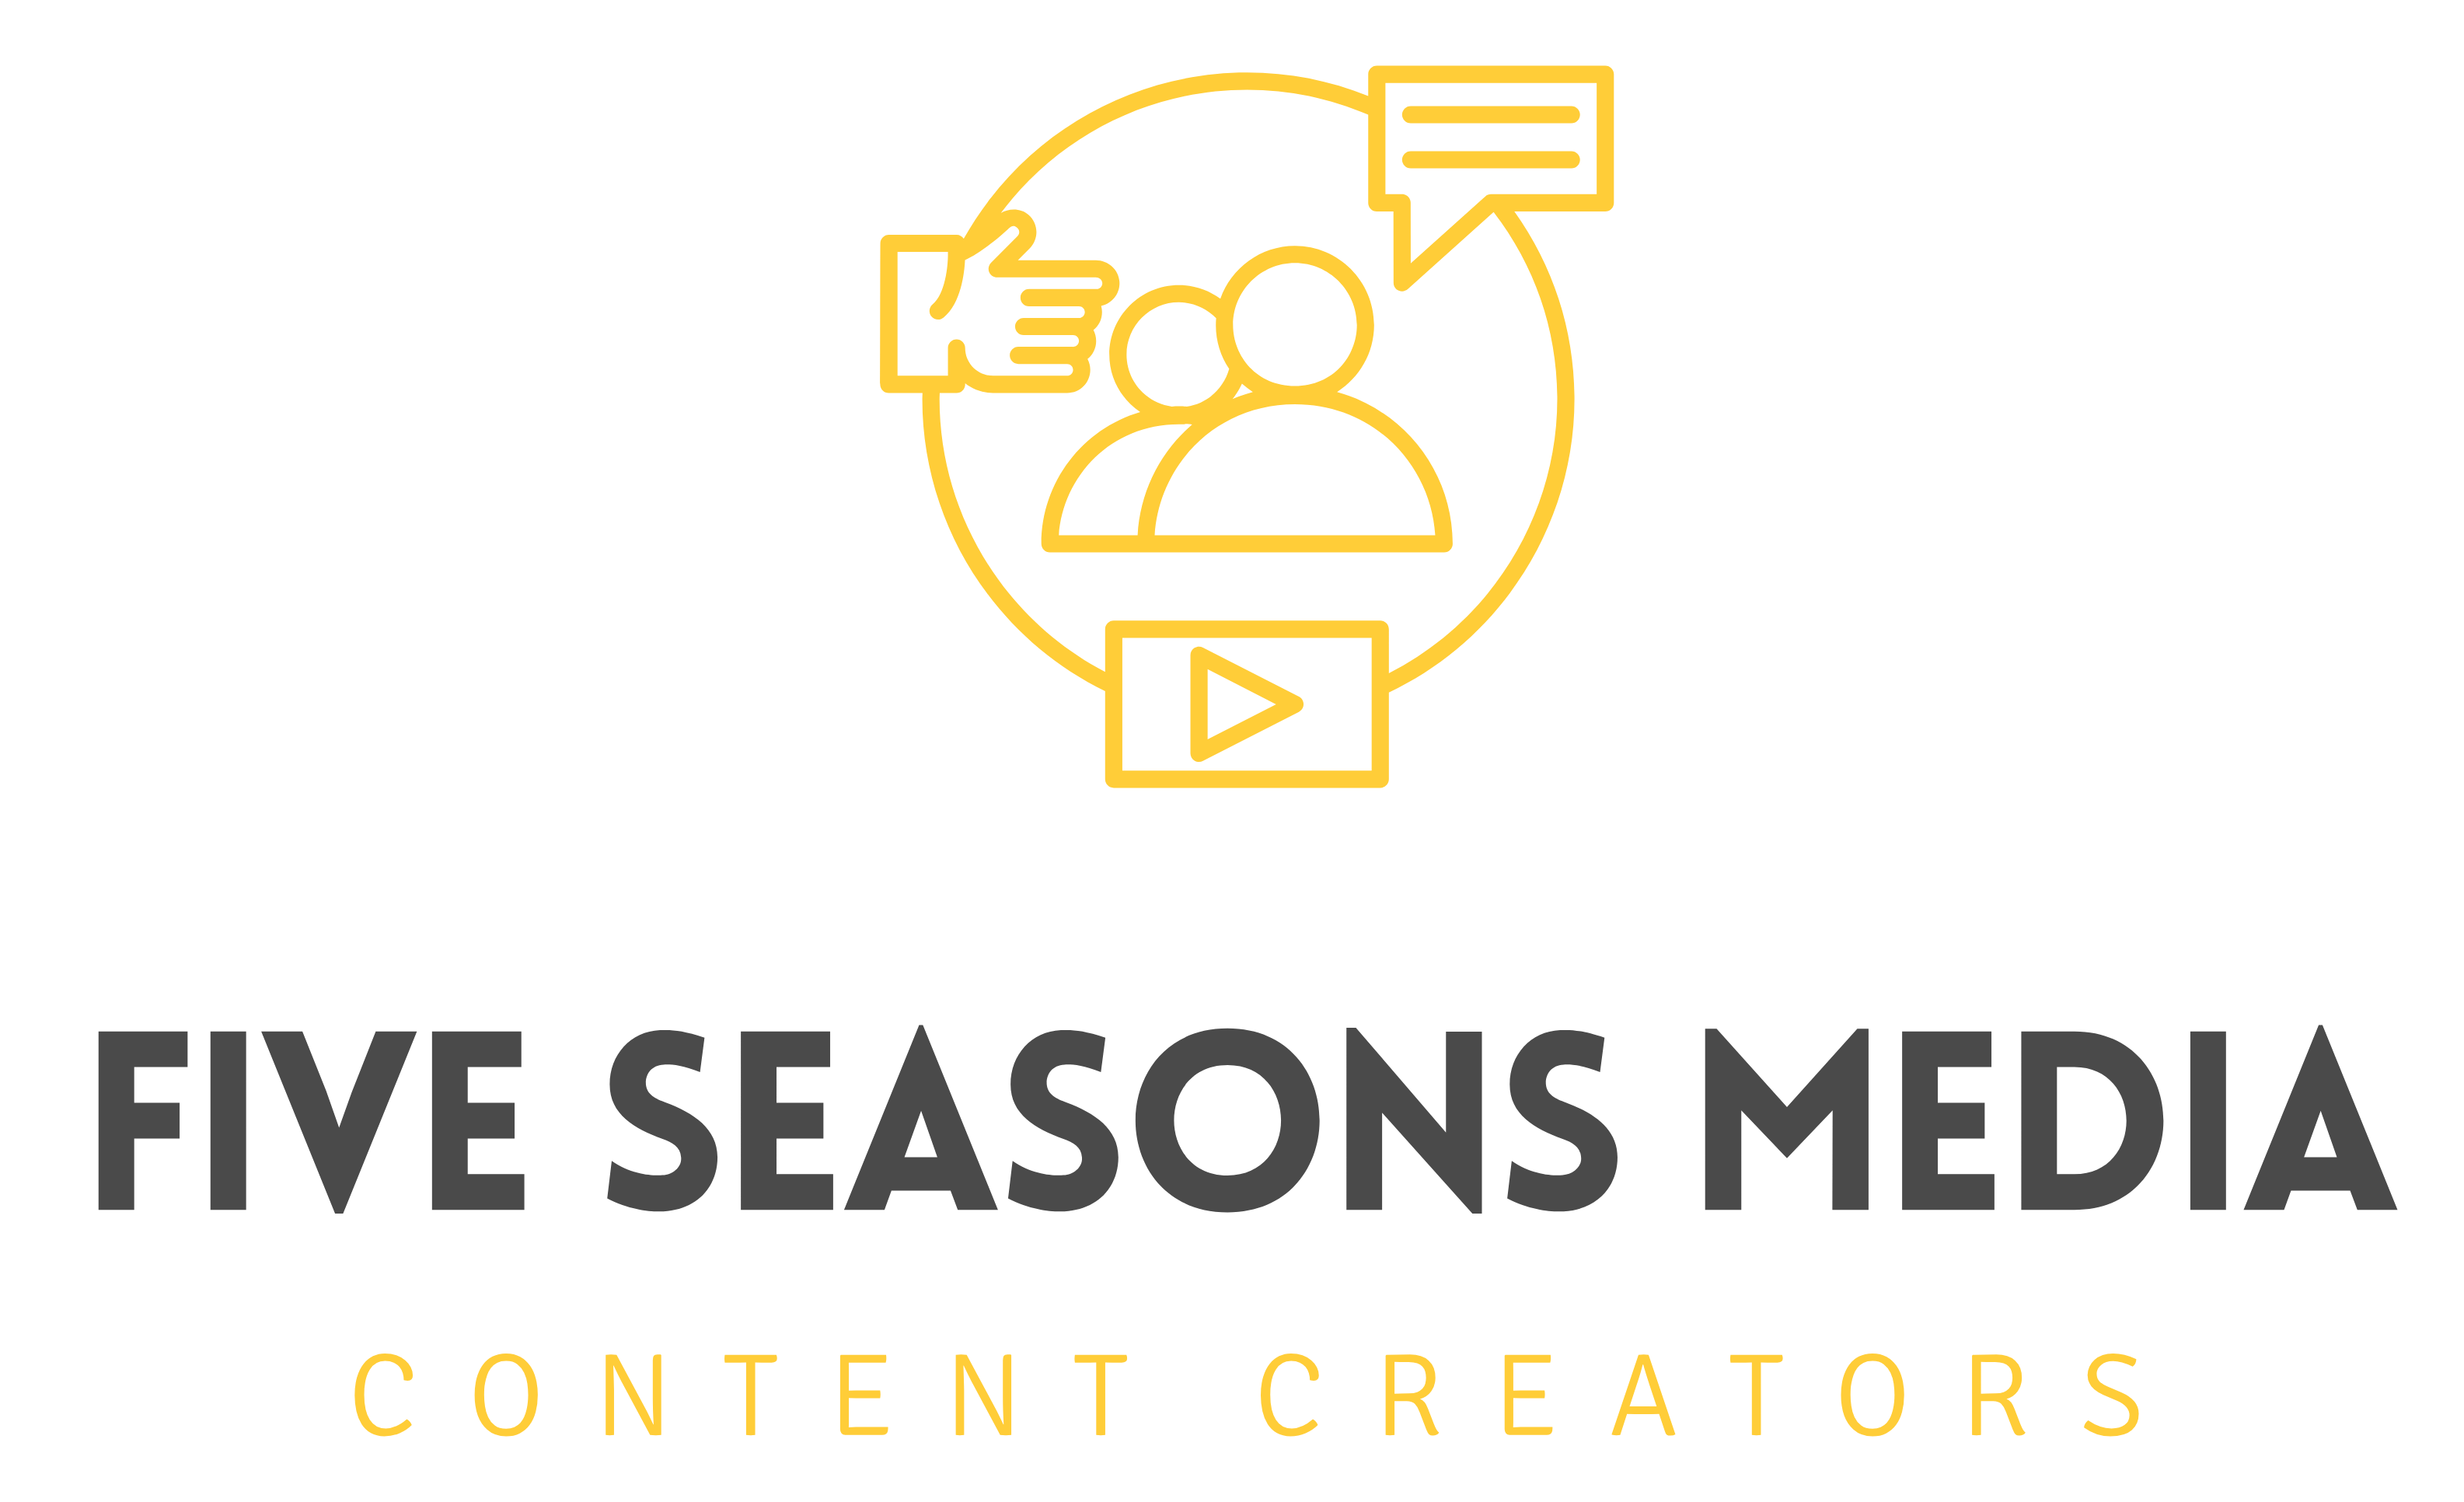 Five Seasons Media